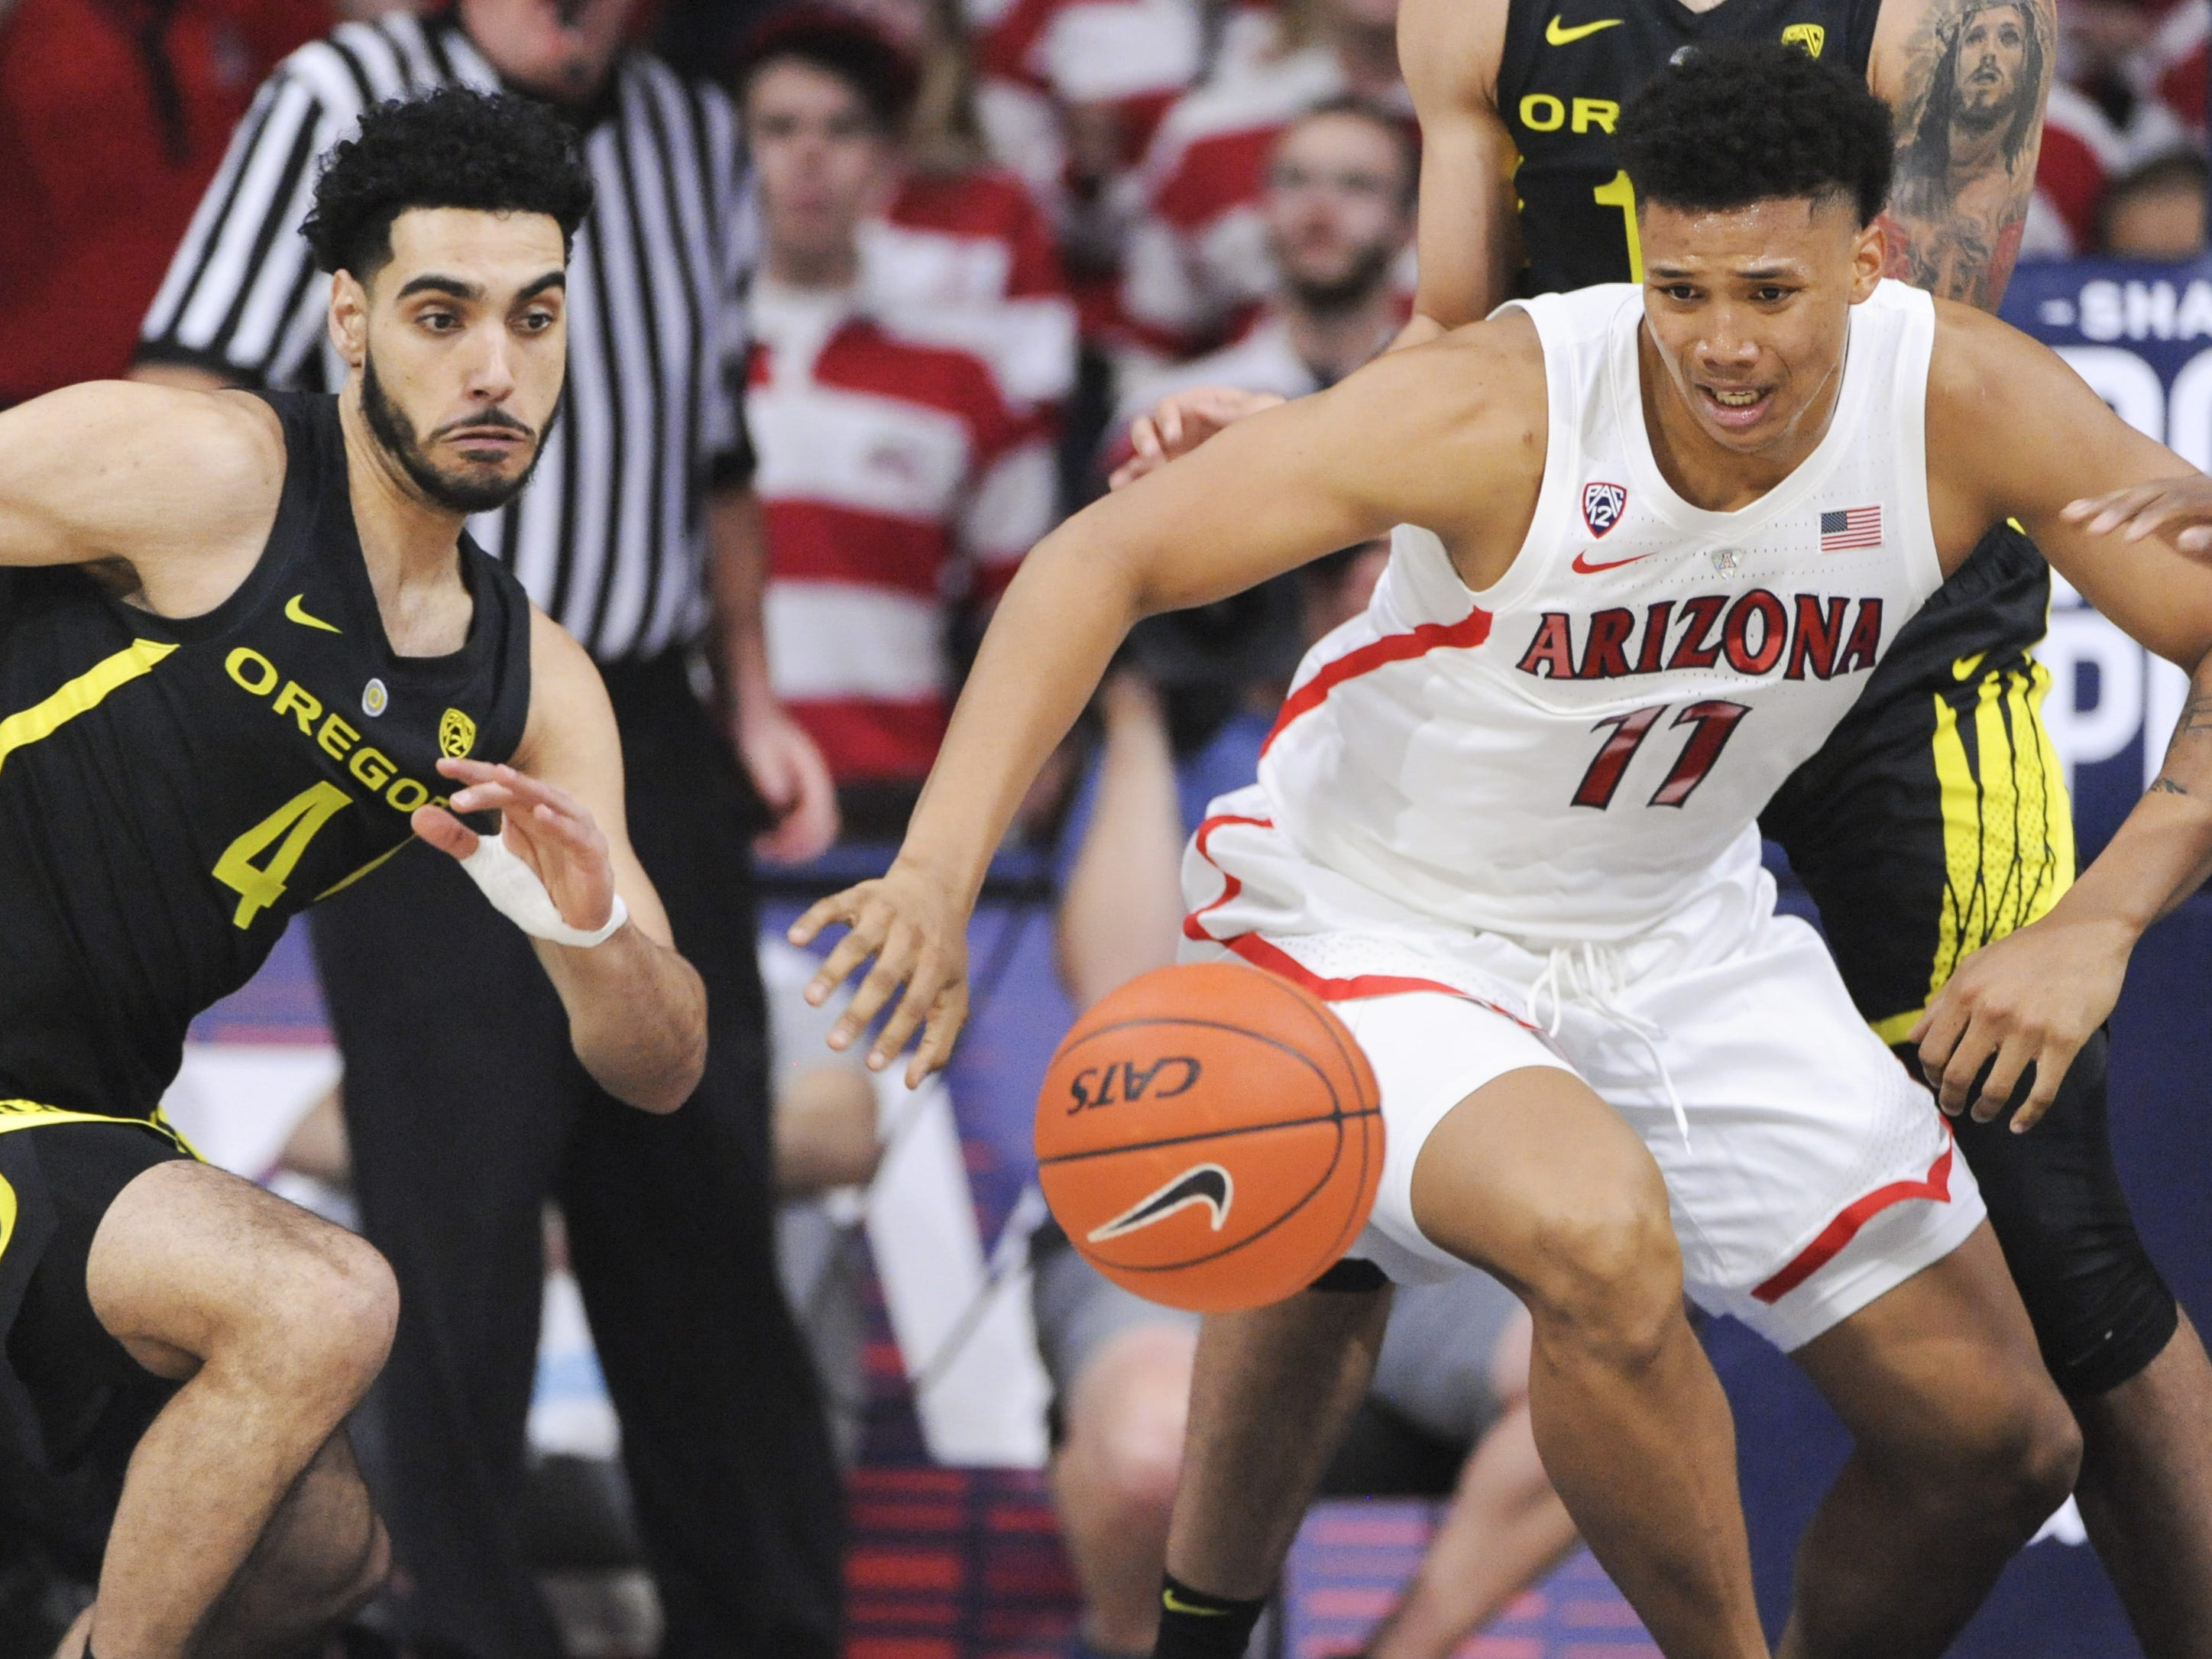 Jan 17, 2019; Tucson, AZ, USA; Oregon Ducks guard Ehab Amin (4) and Arizona Wildcats forward Ira Lee (11) chase after a loose ball during the first half at McKale Center. Mandatory Credit: Casey Sapio-USA TODAY Sports